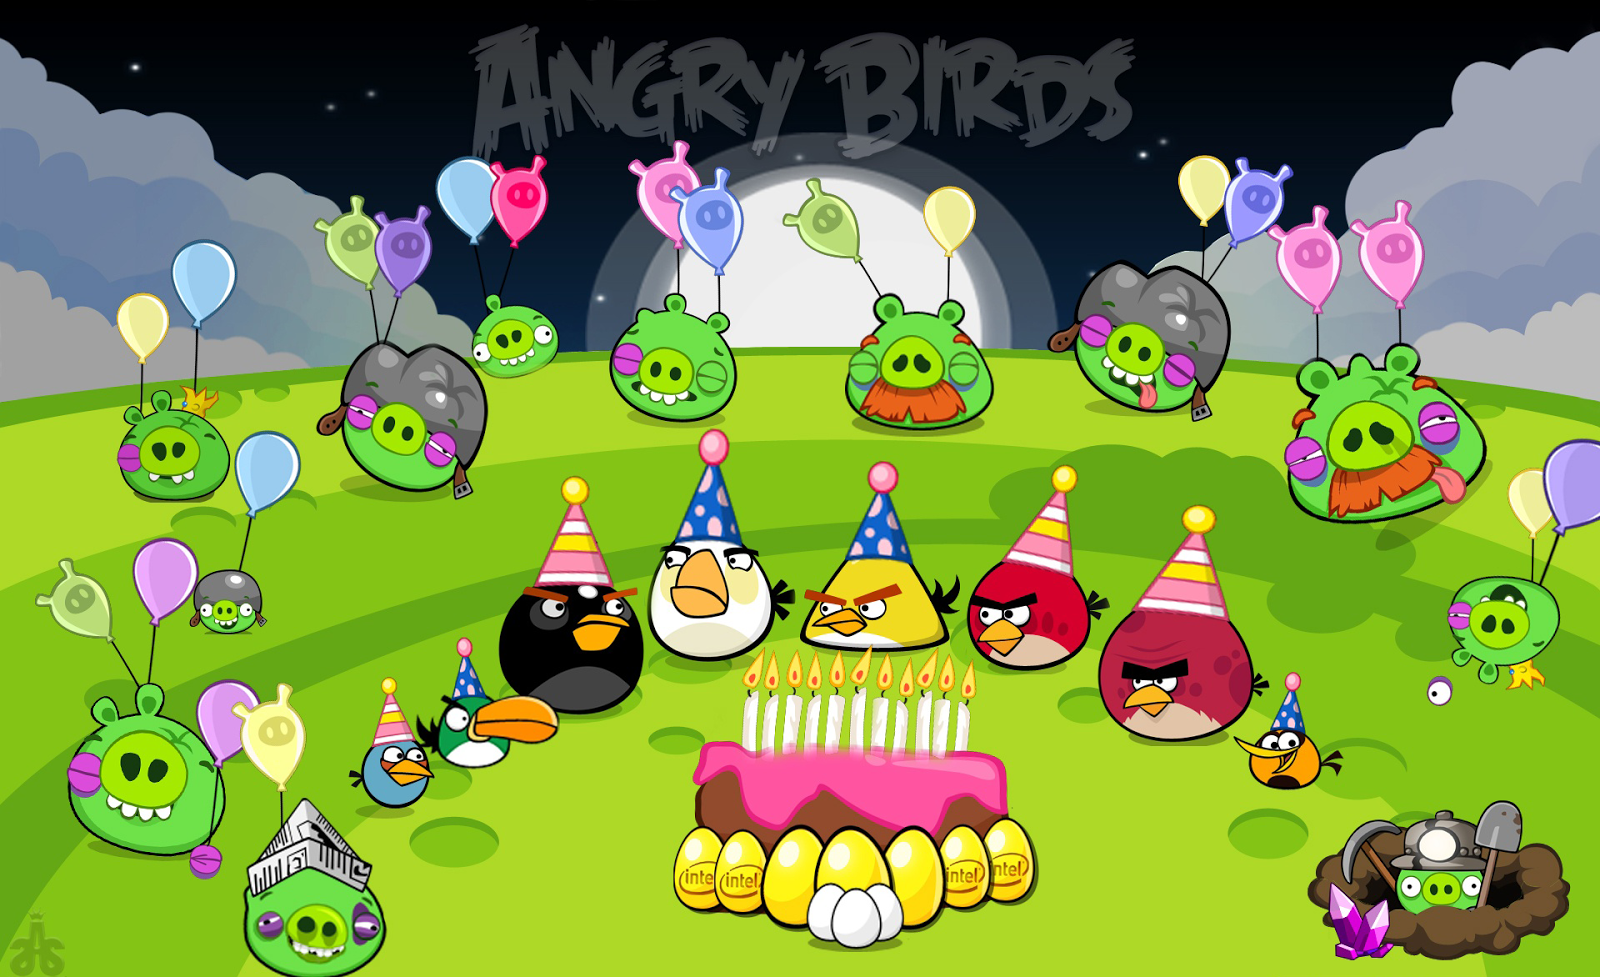 download wallpaper angry birds đẹp nhất